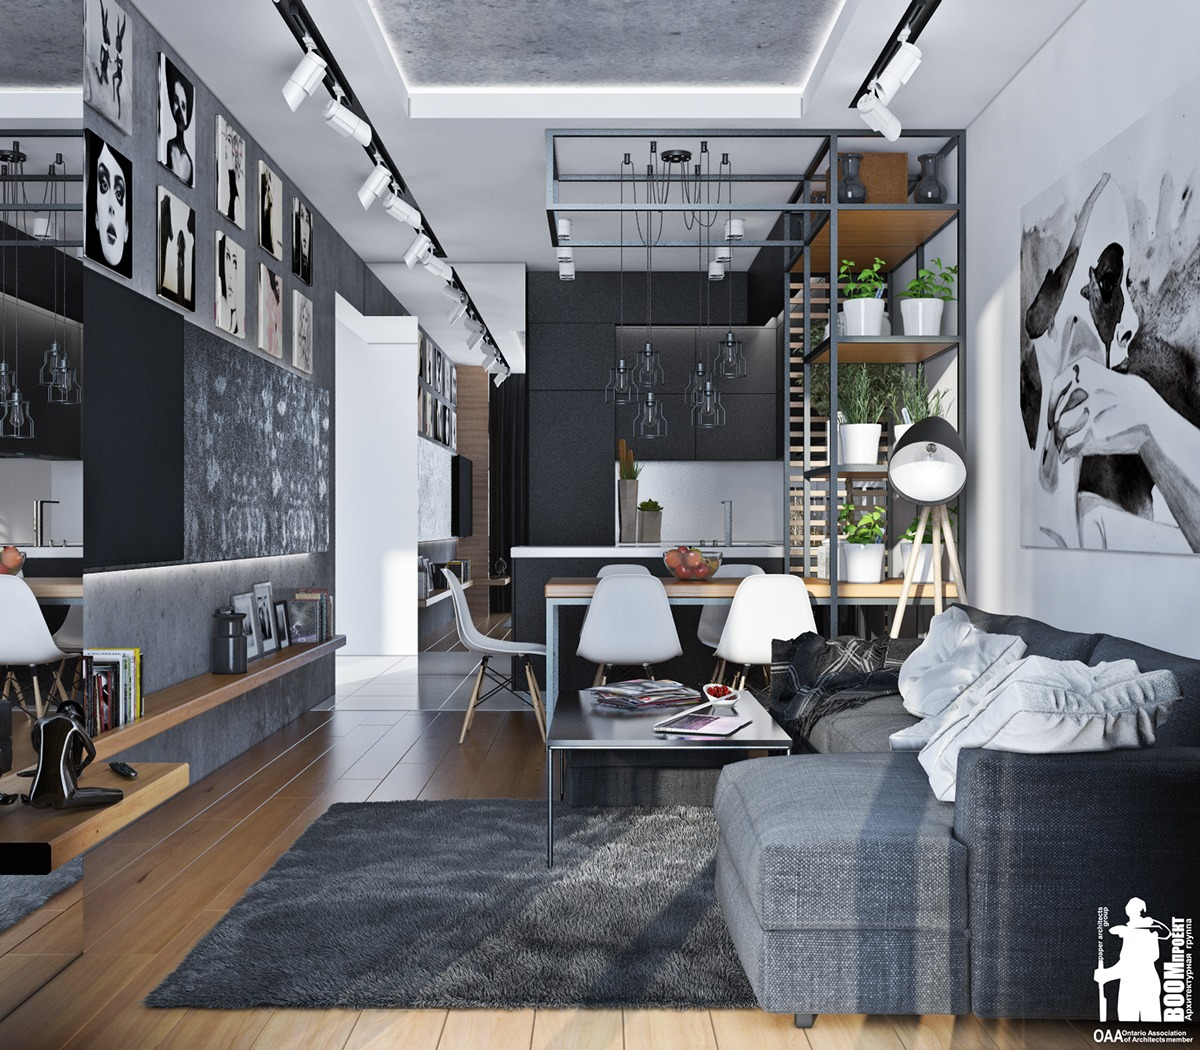 Lovely Monochromatic European Kitchen Design With Gray: Small Artsy Monochromatic Loft With A Luxe Vibe